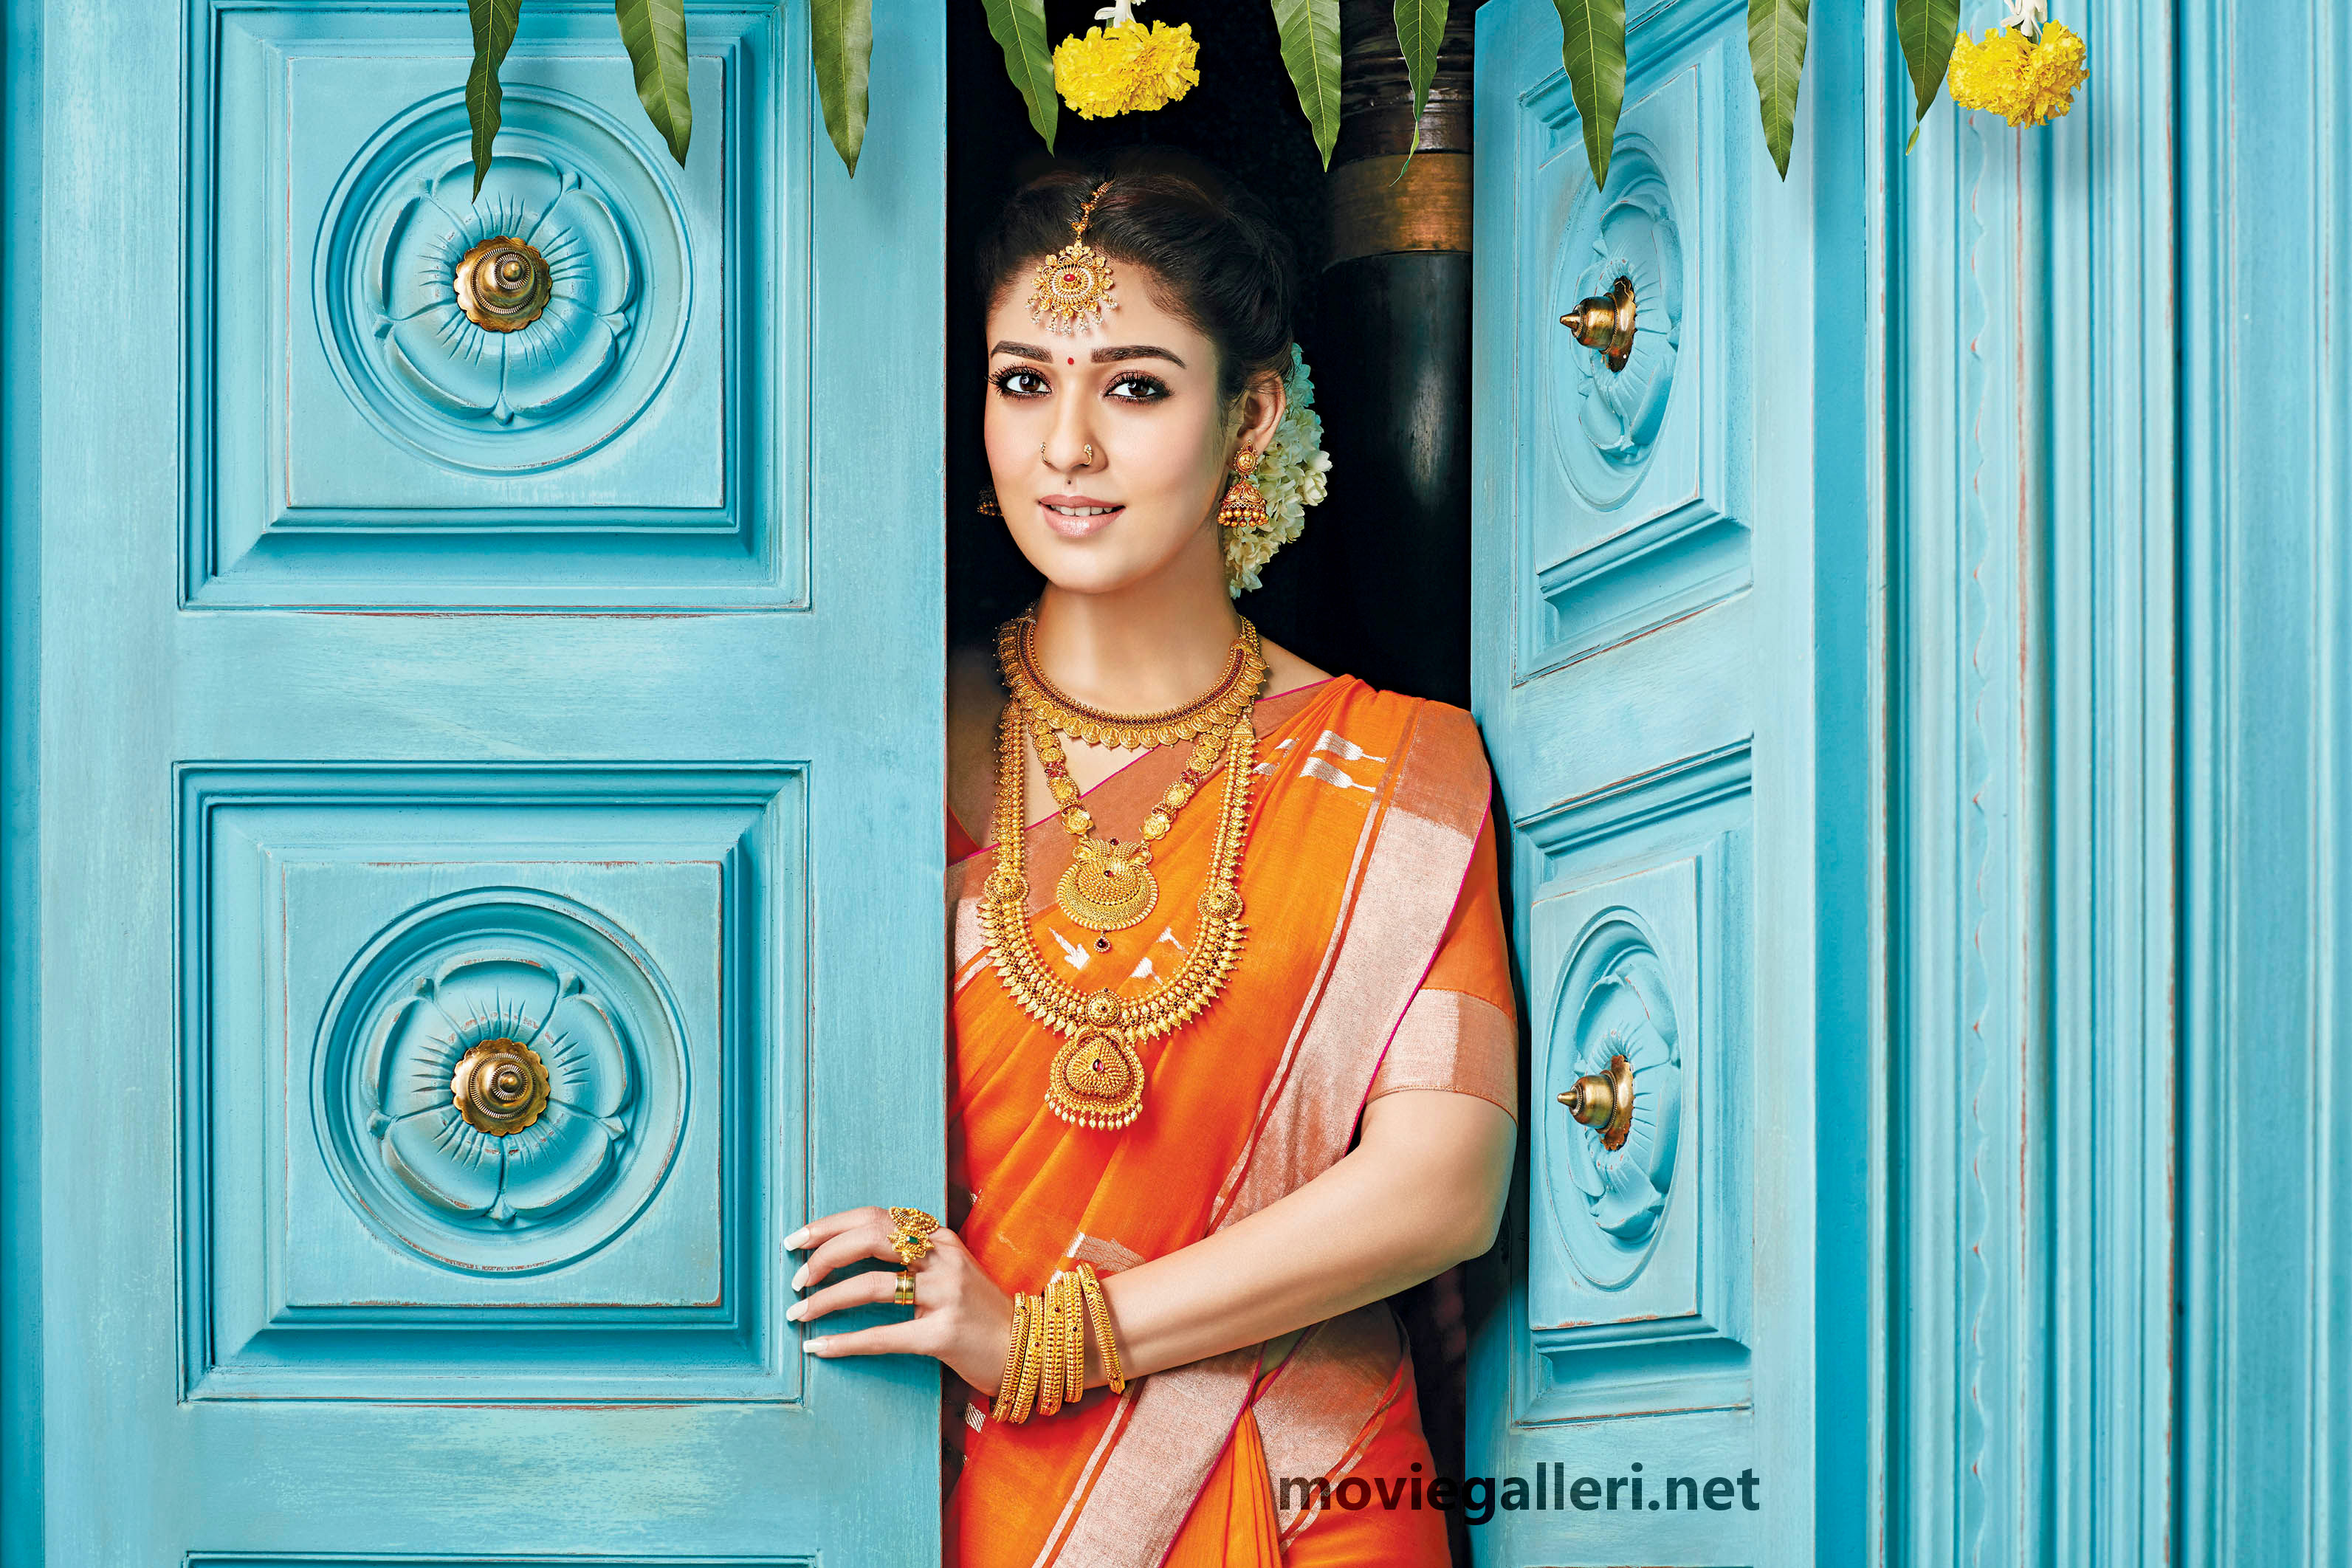 Tanishq ropes Actress Nayanthara as its new face for South India